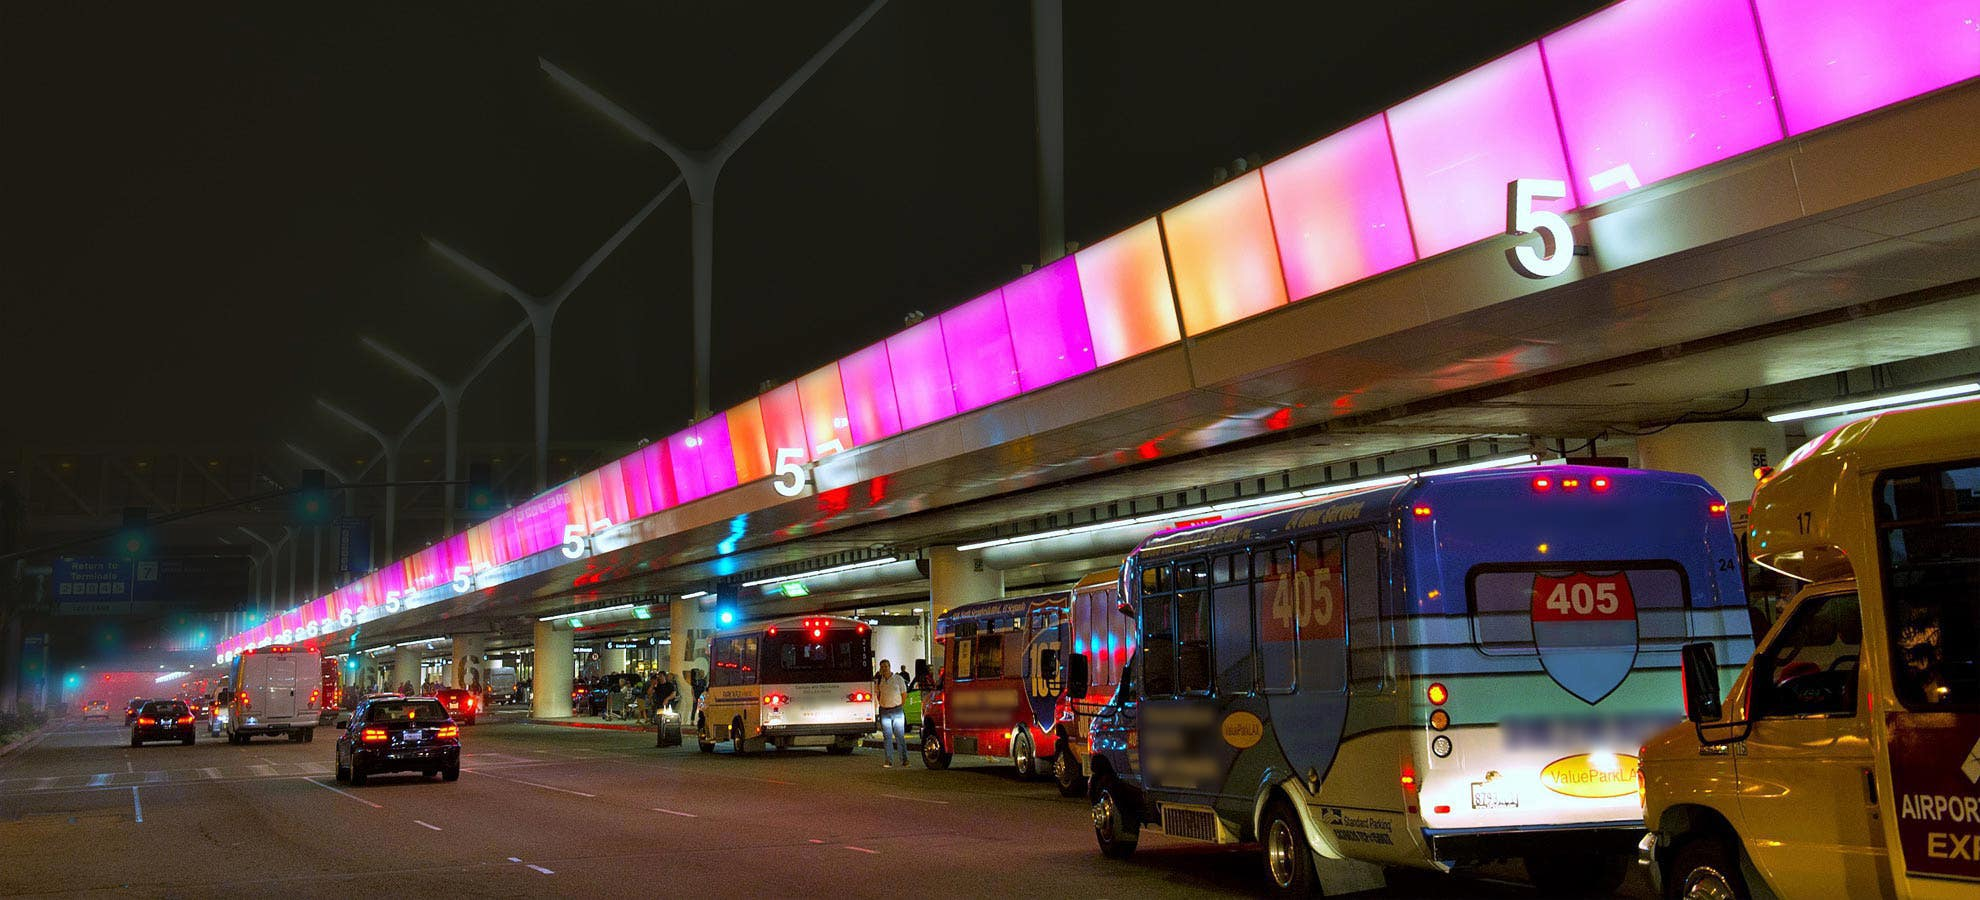 Terminal 5 at LAX | Photo: LAX